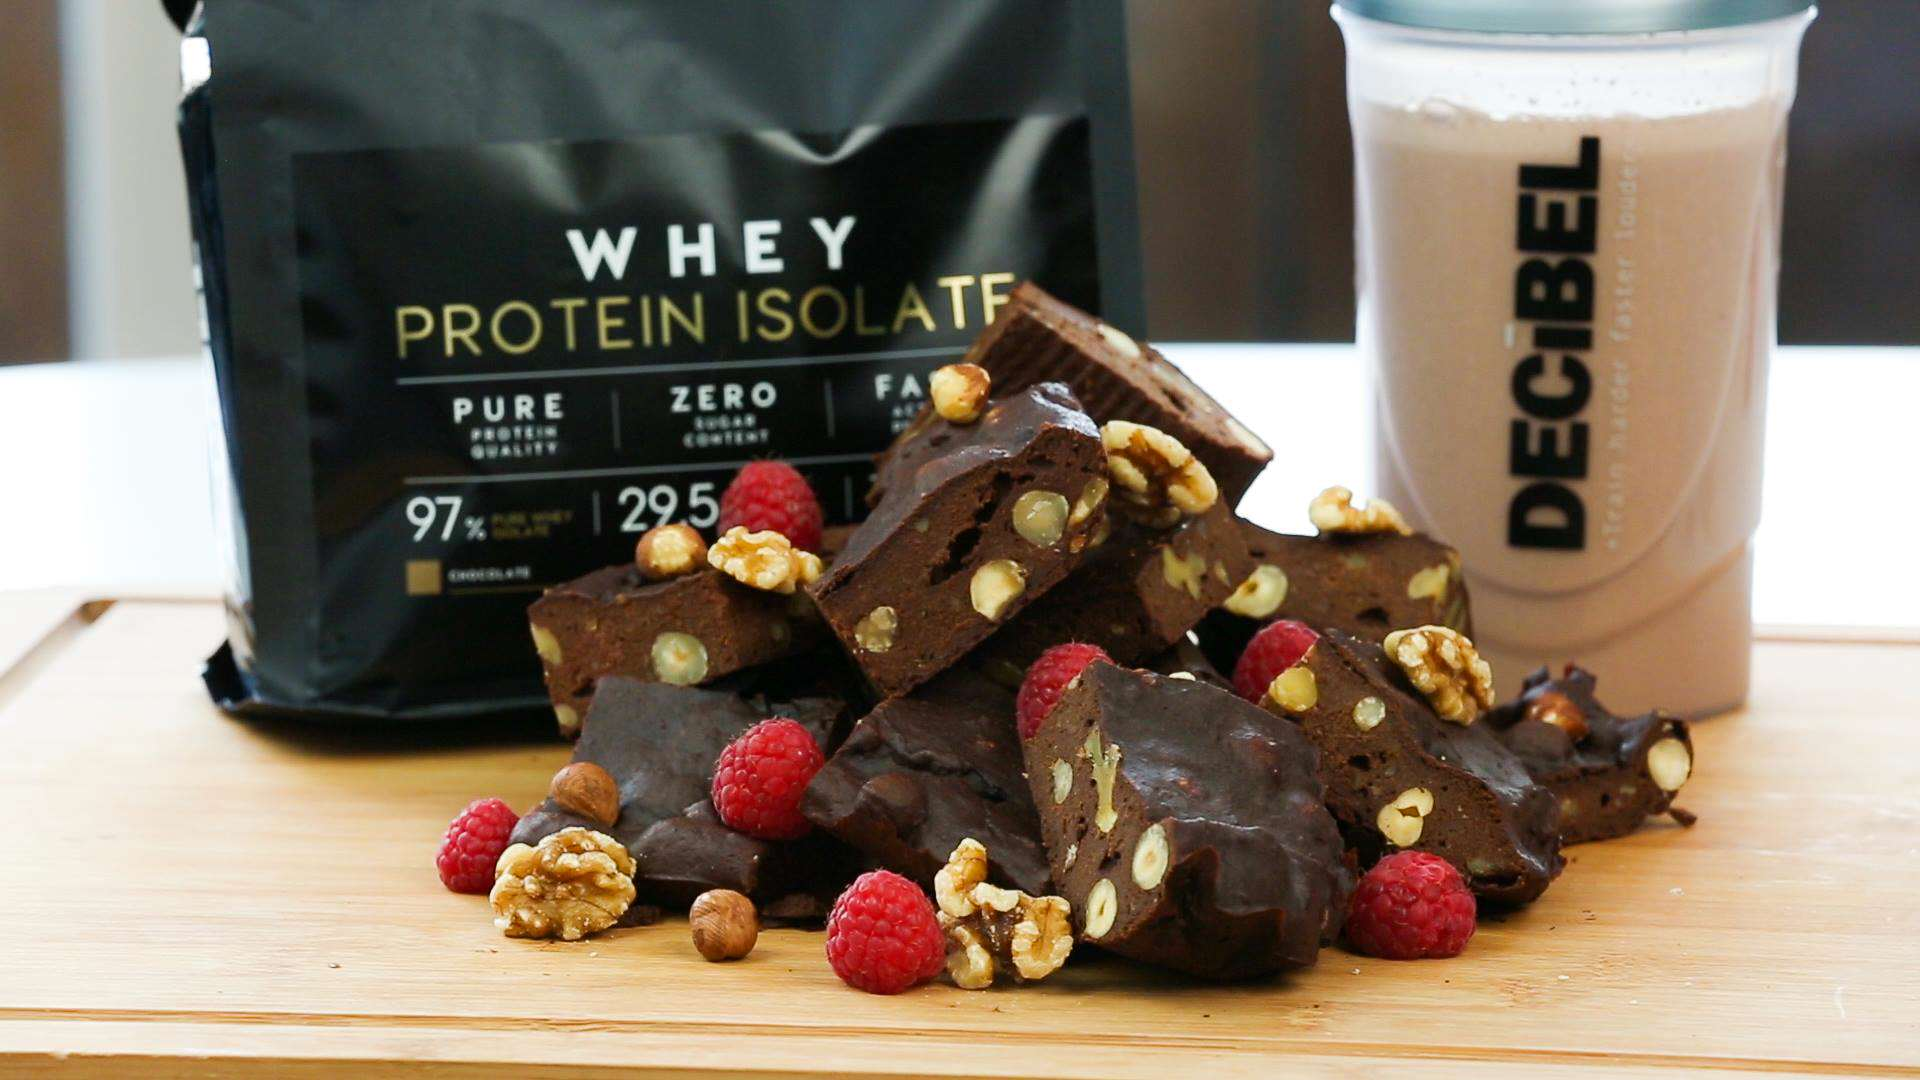 browniestills1 Heres How To Make Protein Brownies